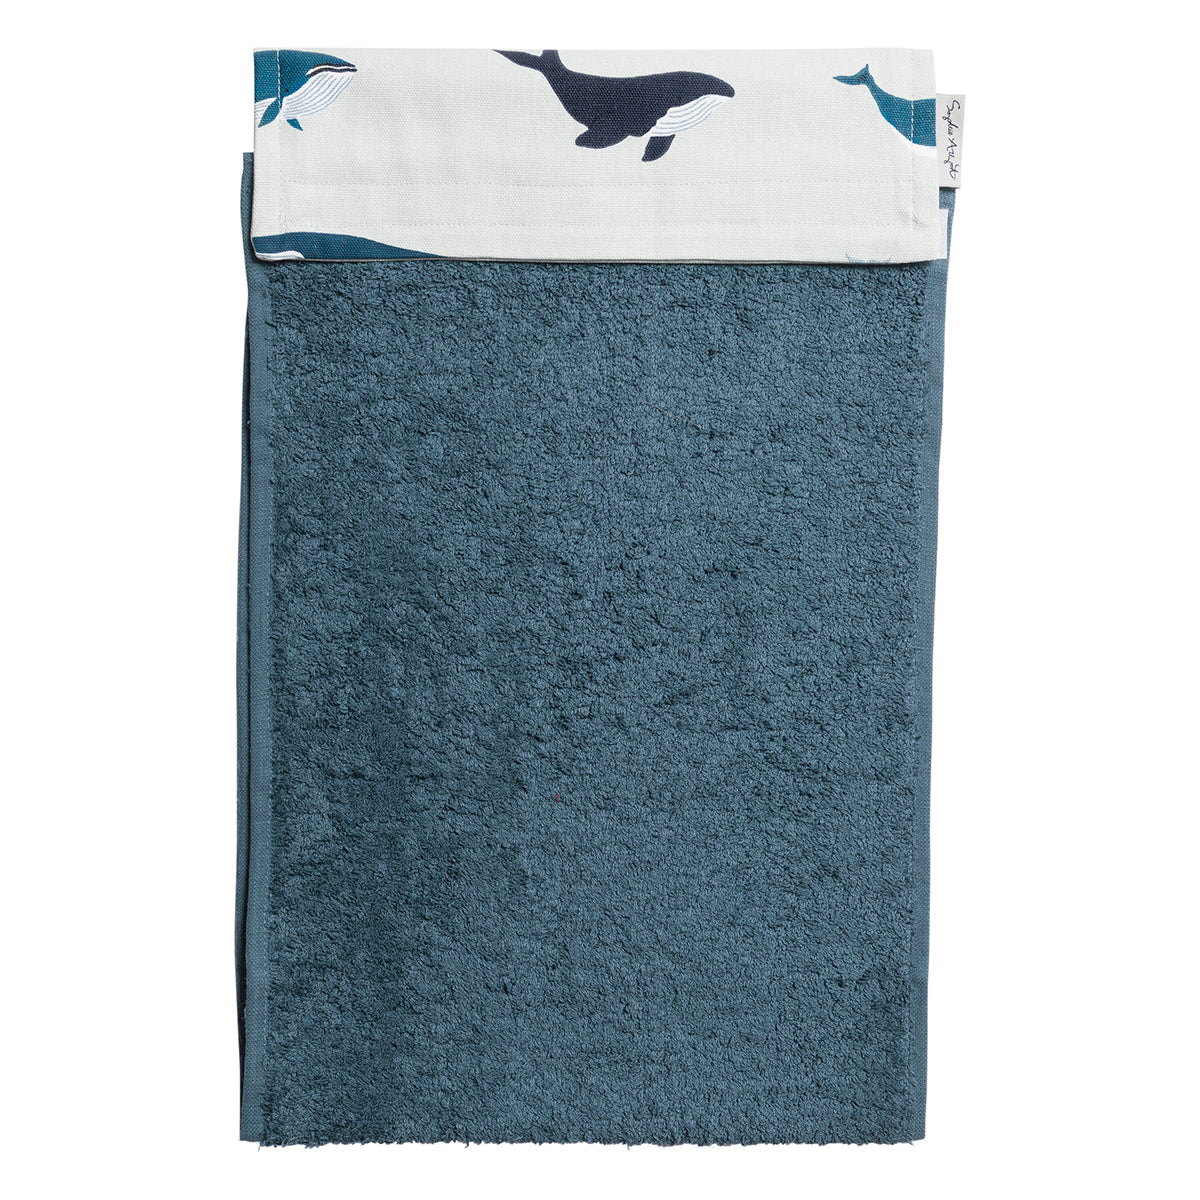 Whales Roller Hand Towel by Sophie Allport